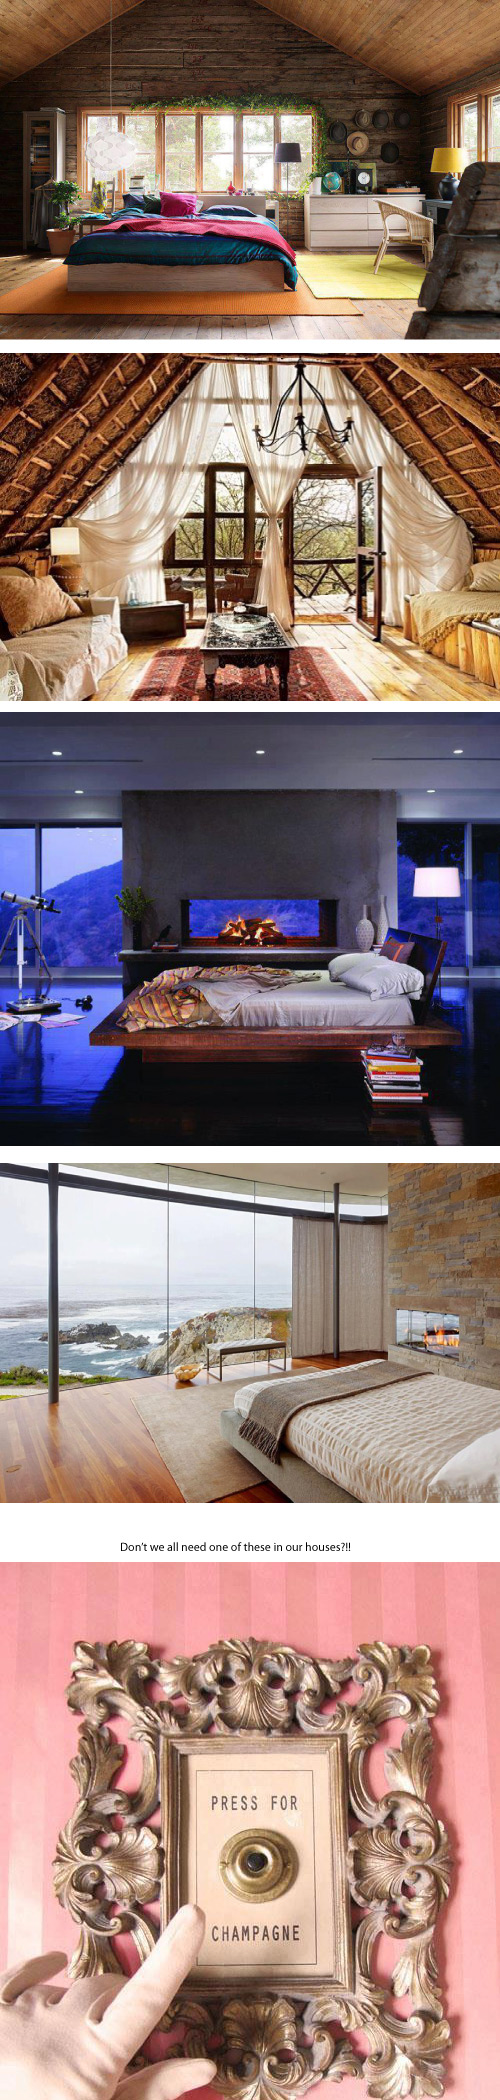 Bedrooms-Collage